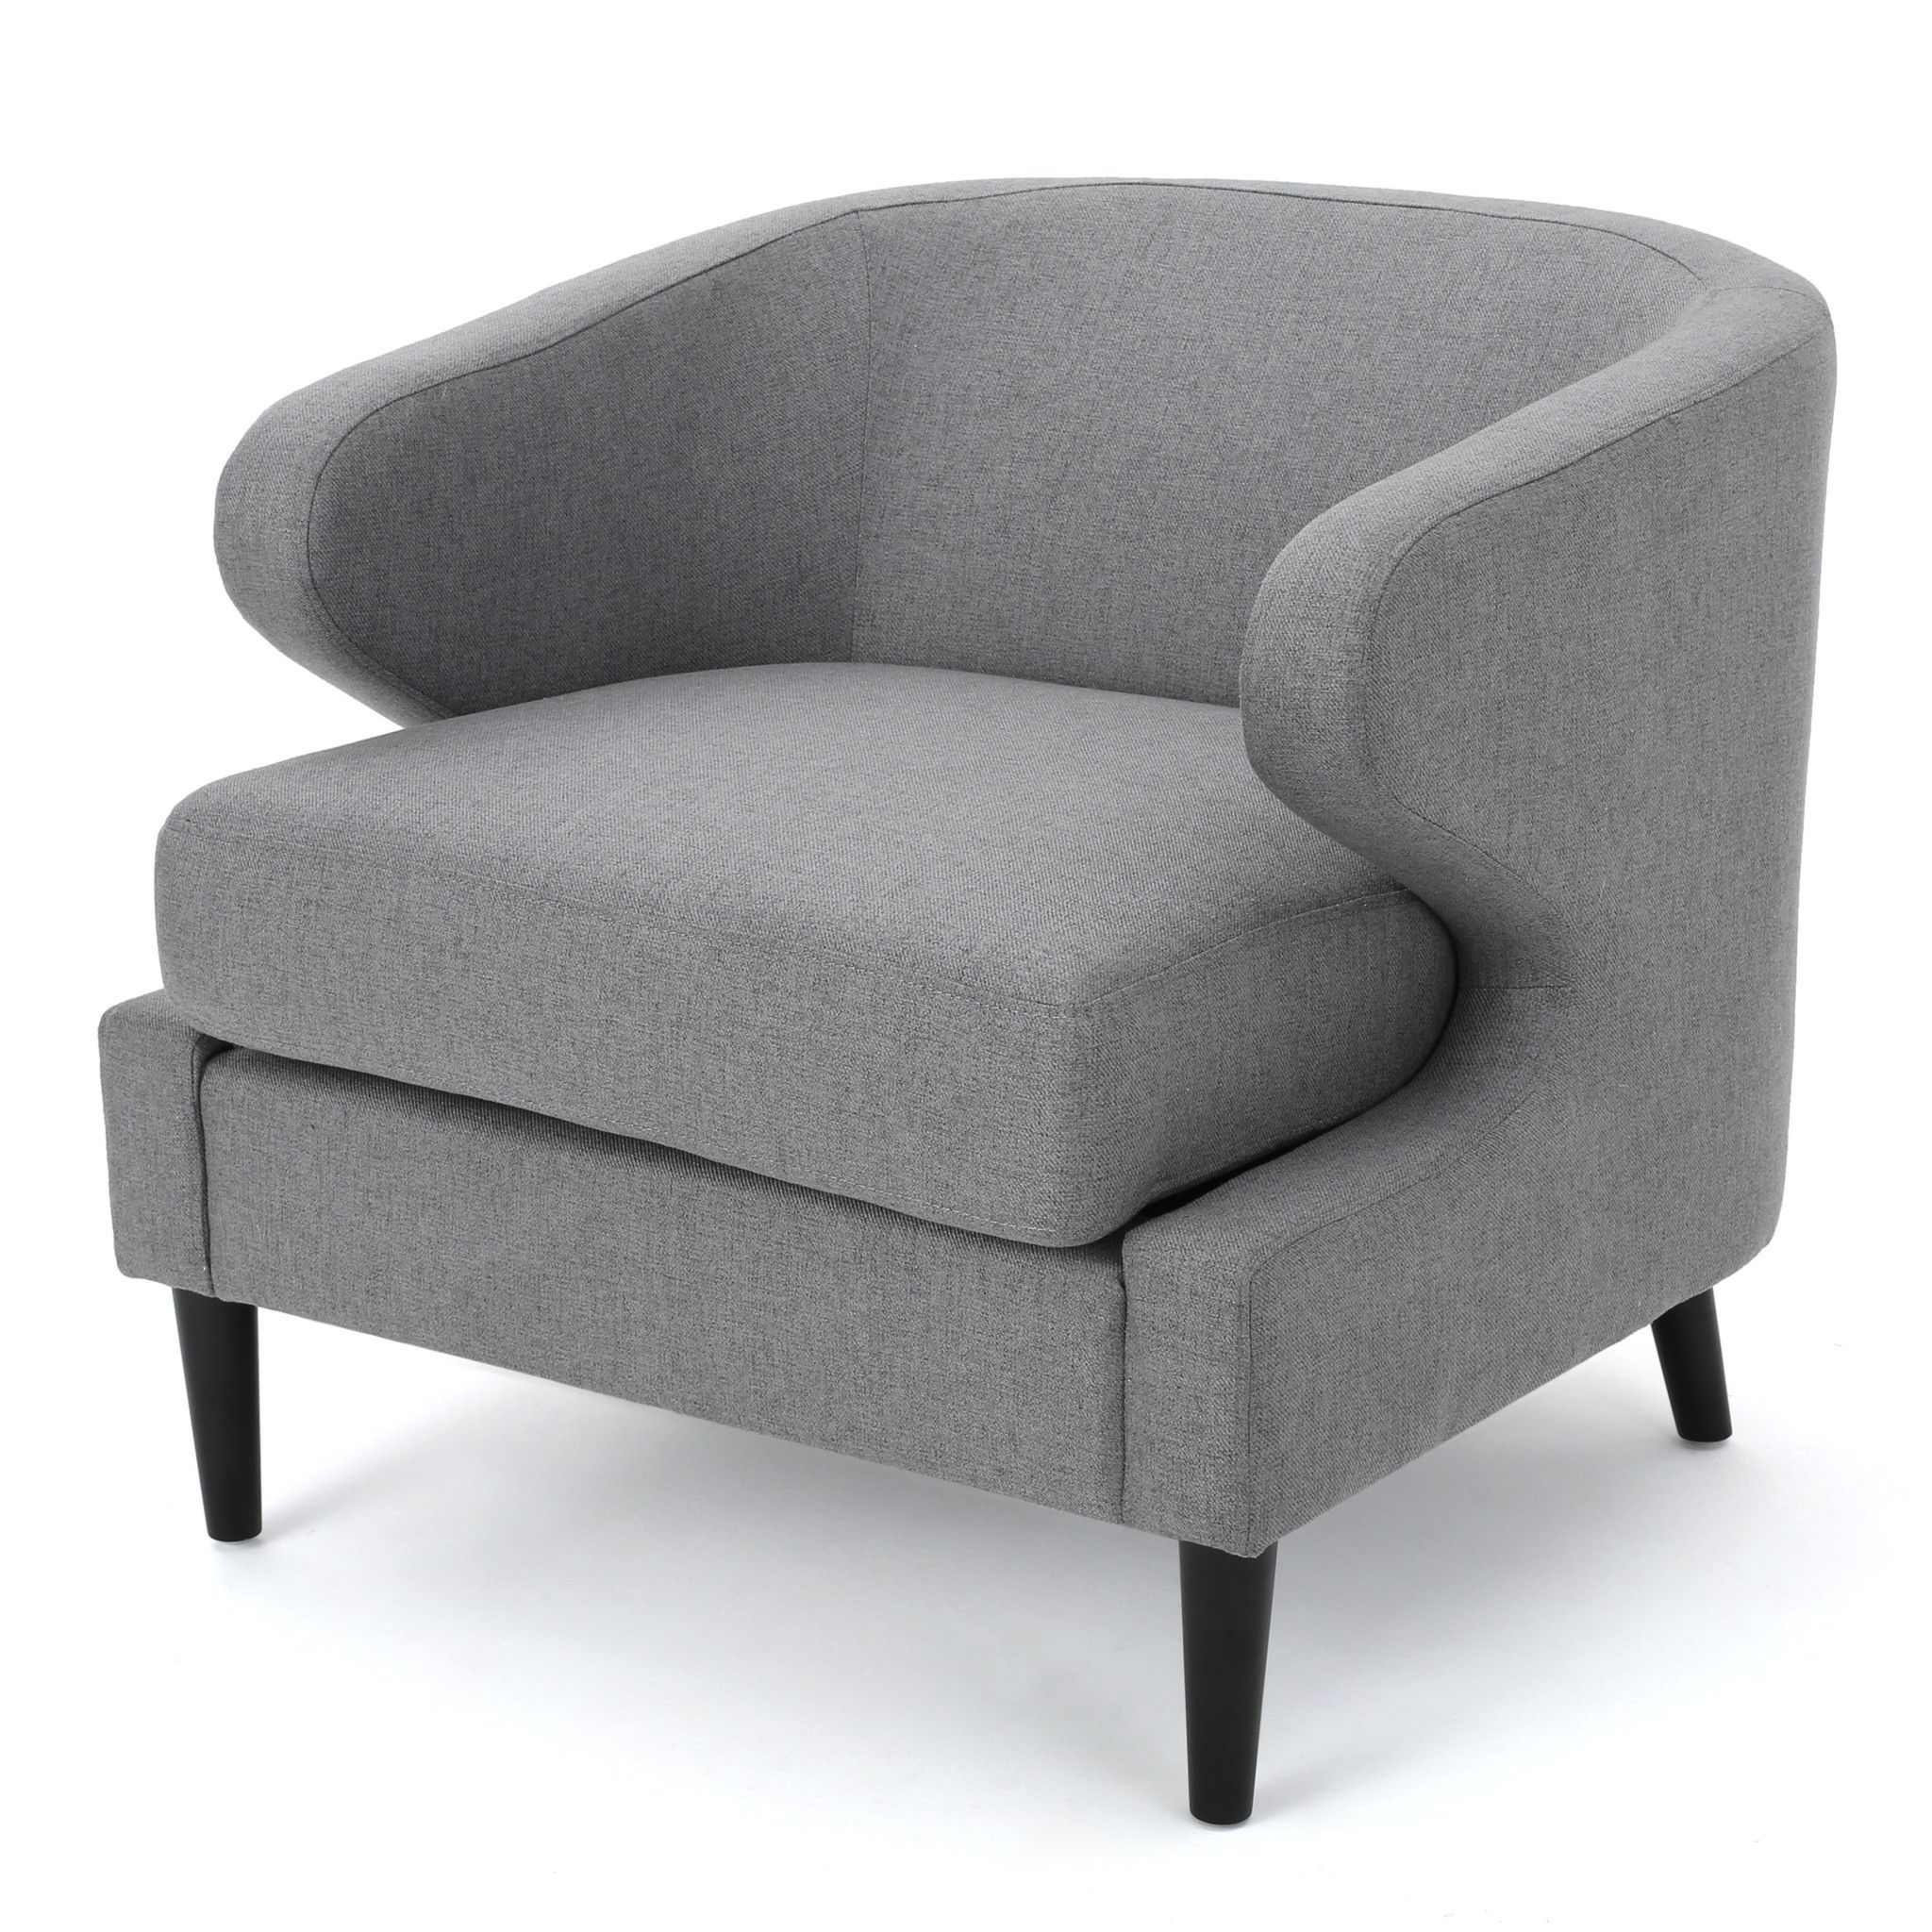 Nuage Decorative Modern Fabric Accent Chair Upholstered Accent